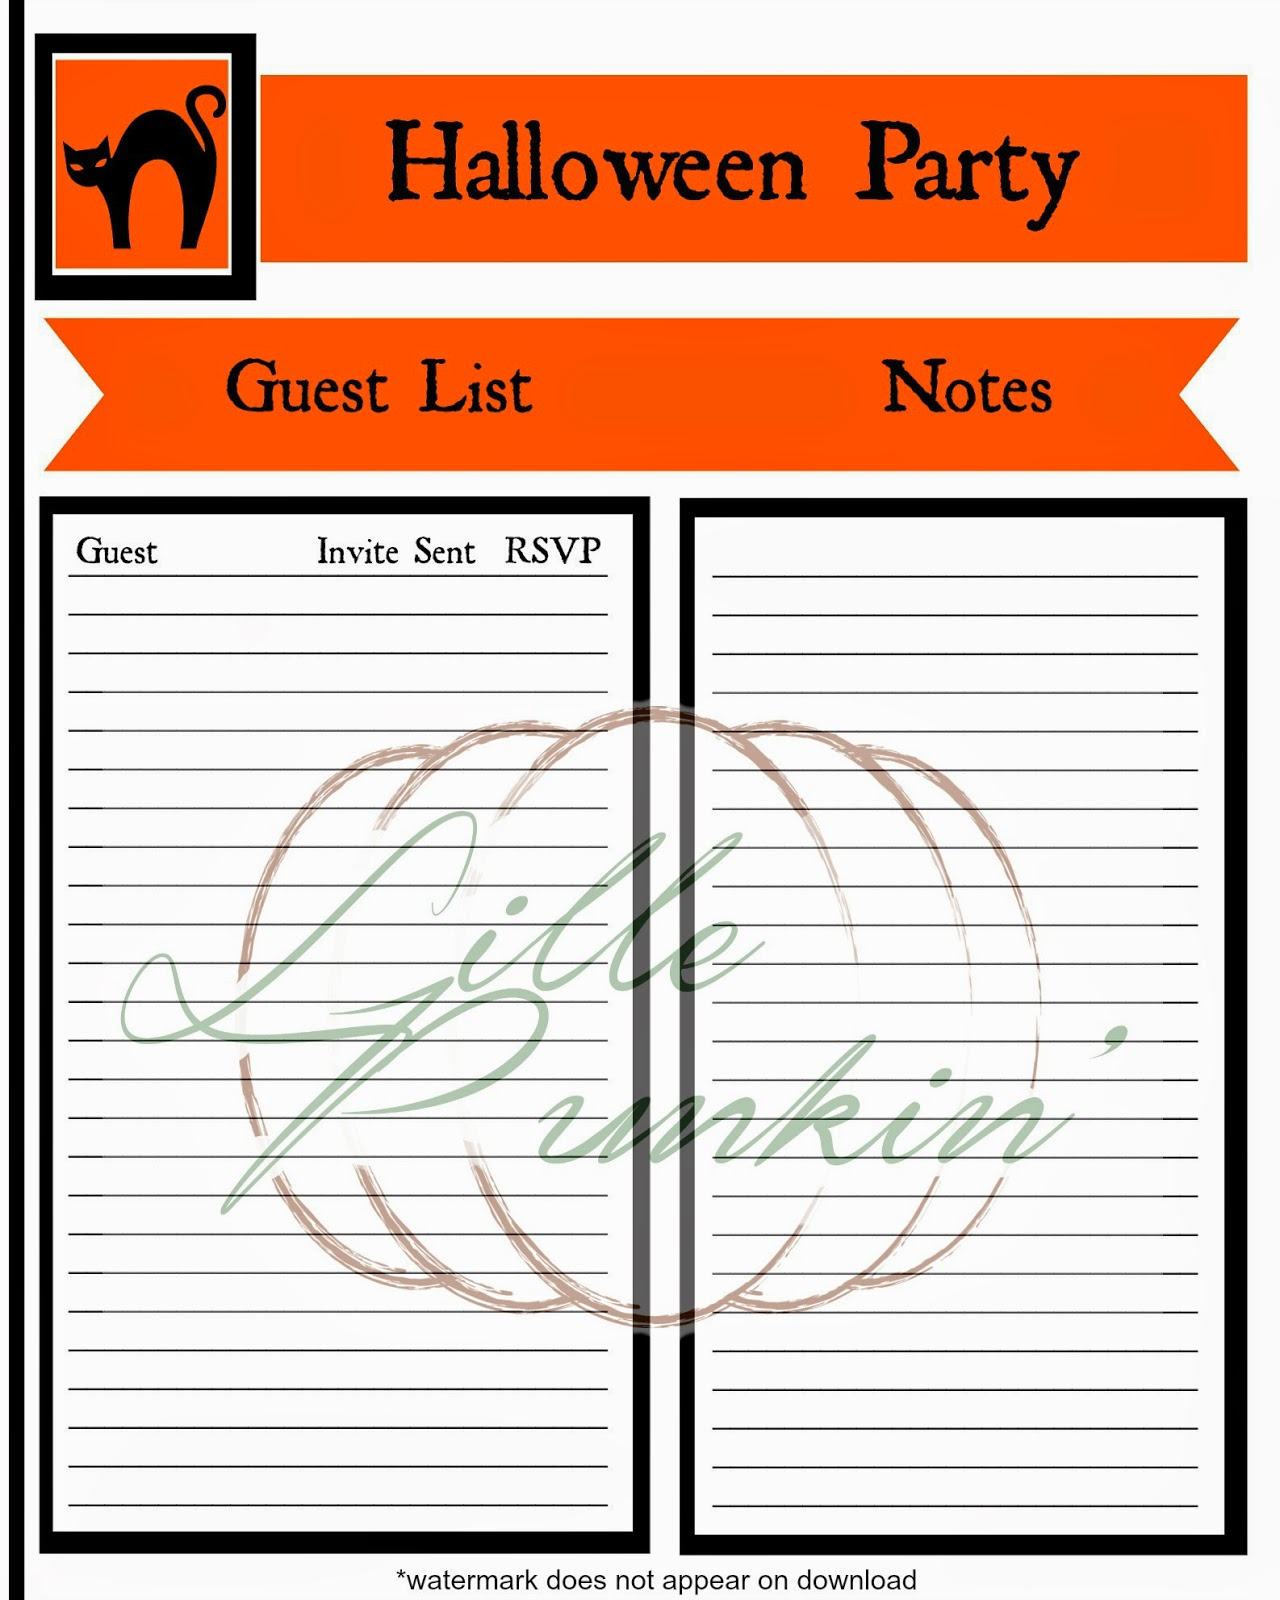 Lille Punkin\': Free Halloween Party Planning Printables!